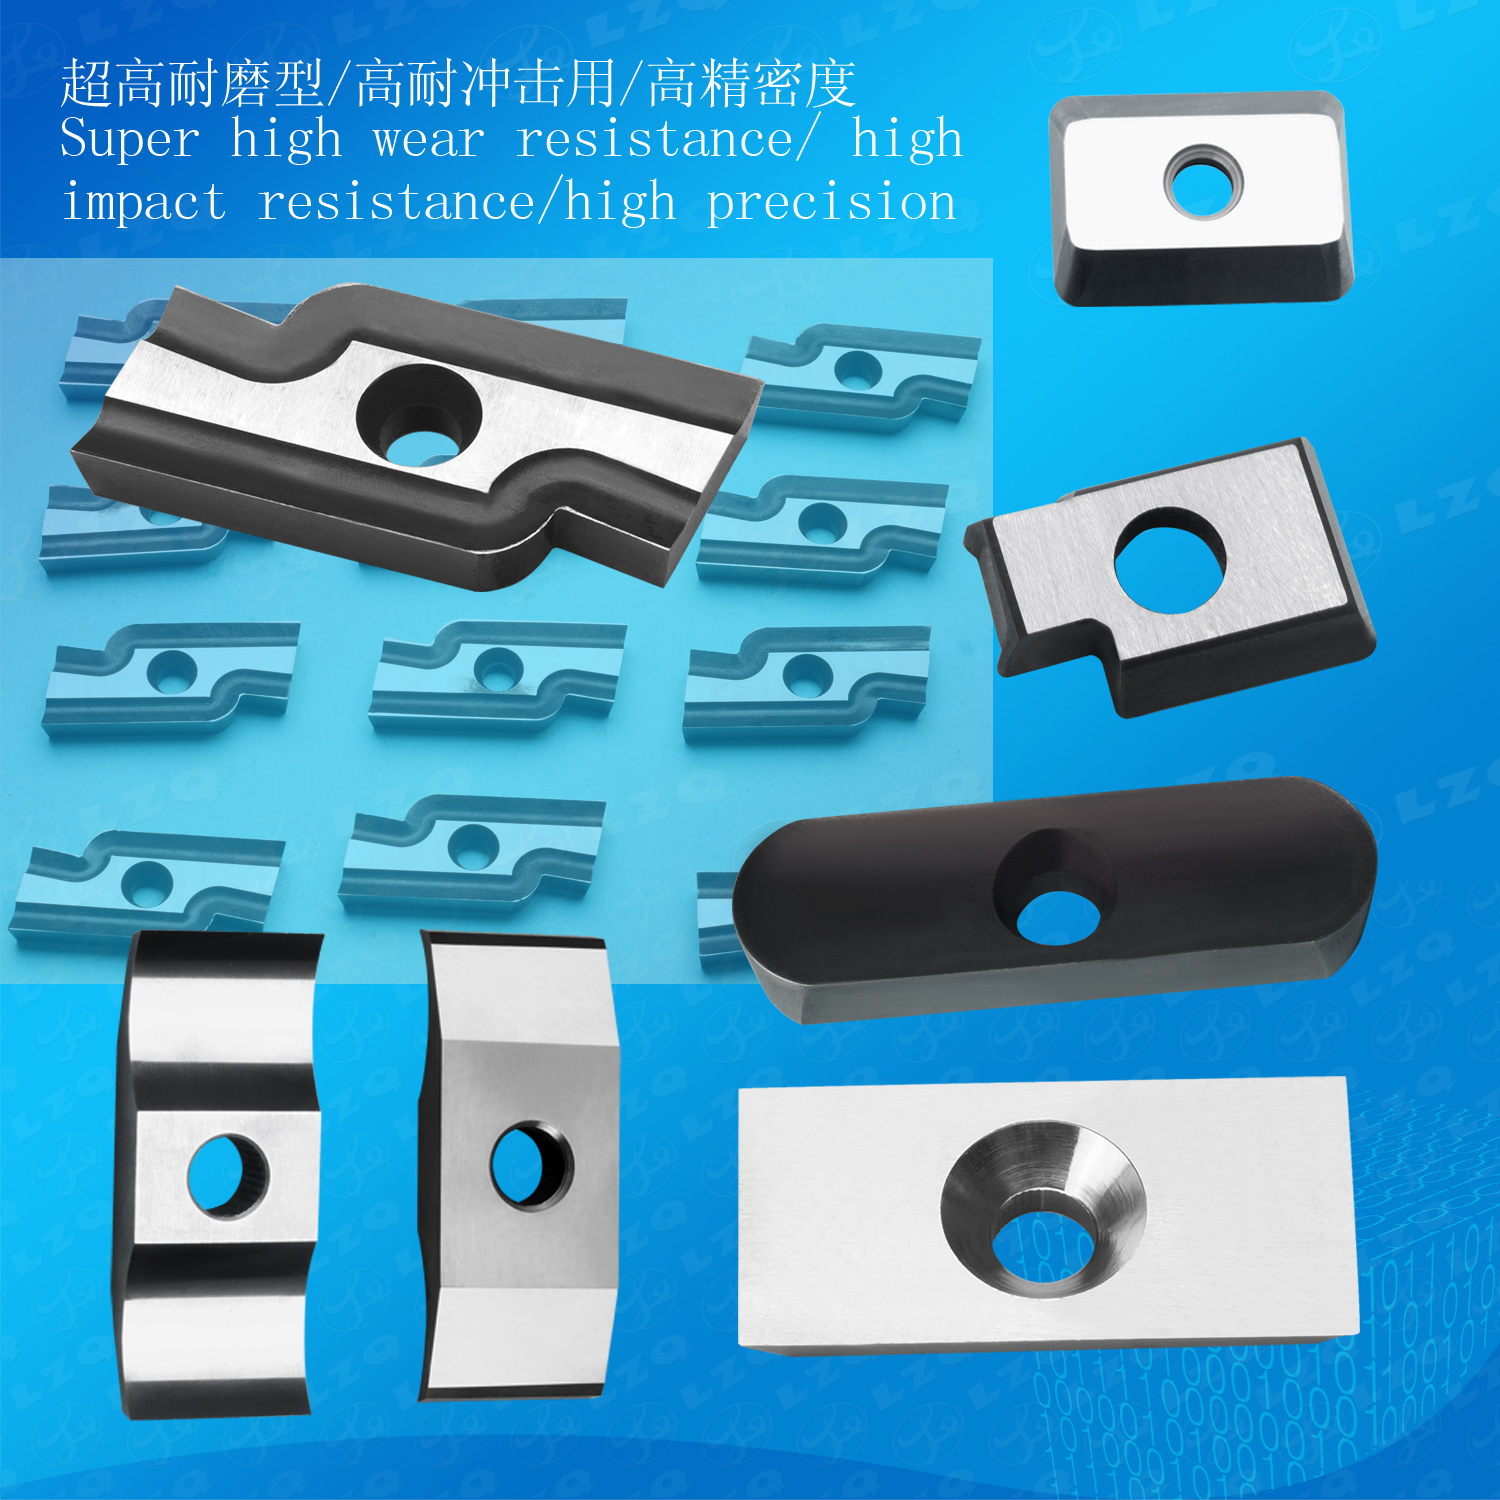 Stainless Steel Cutting Blade, Cobalt High Speed Steel Cutter, HSS Cutting Blade